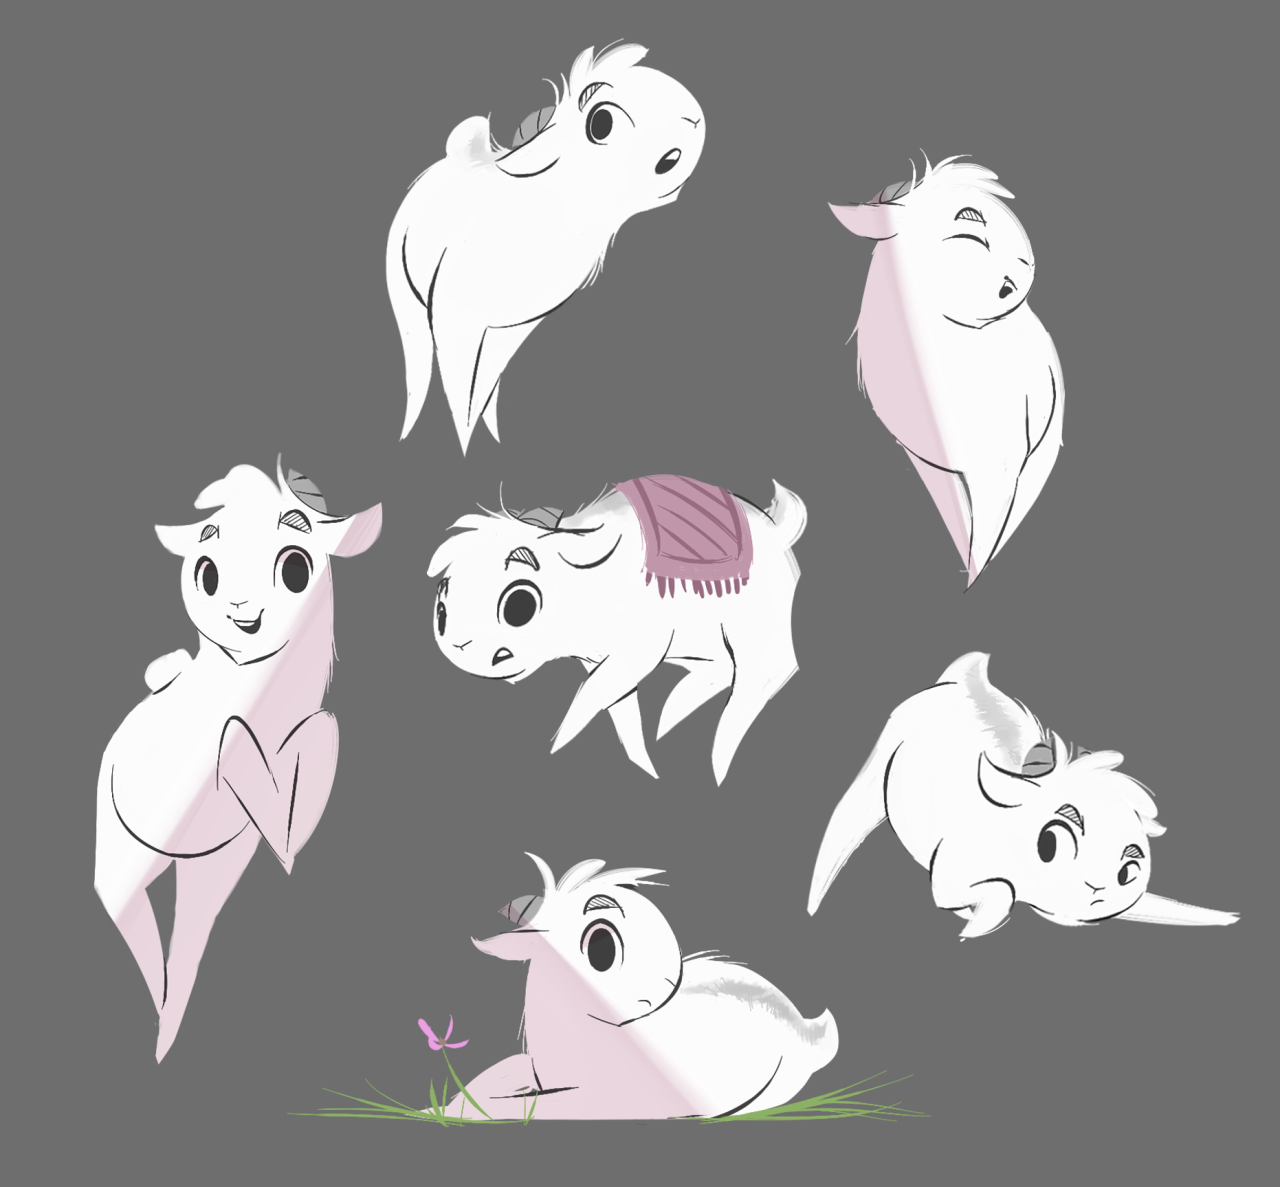 More Goat Doodles Now With Style Animal Drawings Character Art Animal Art Projects